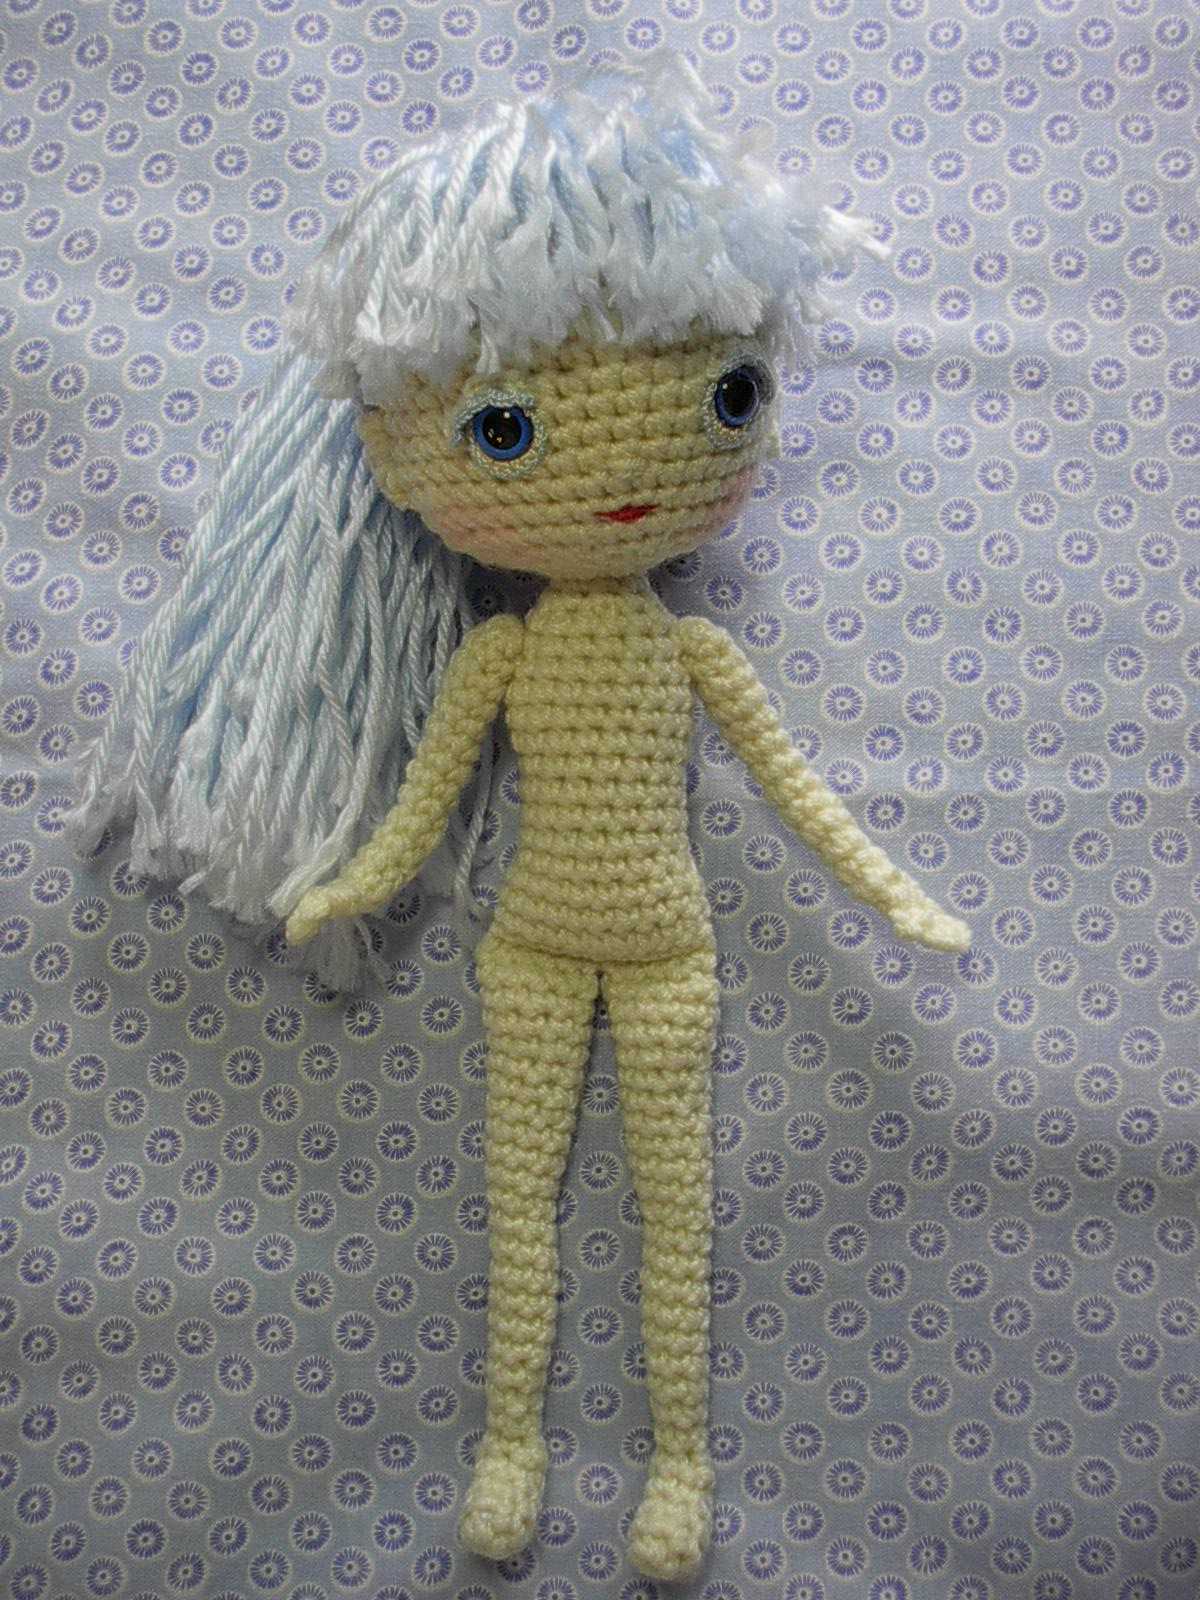 Amigurumi Human Doll Free Pattern : 2000 Free Amigurumi Patterns: Human Doll